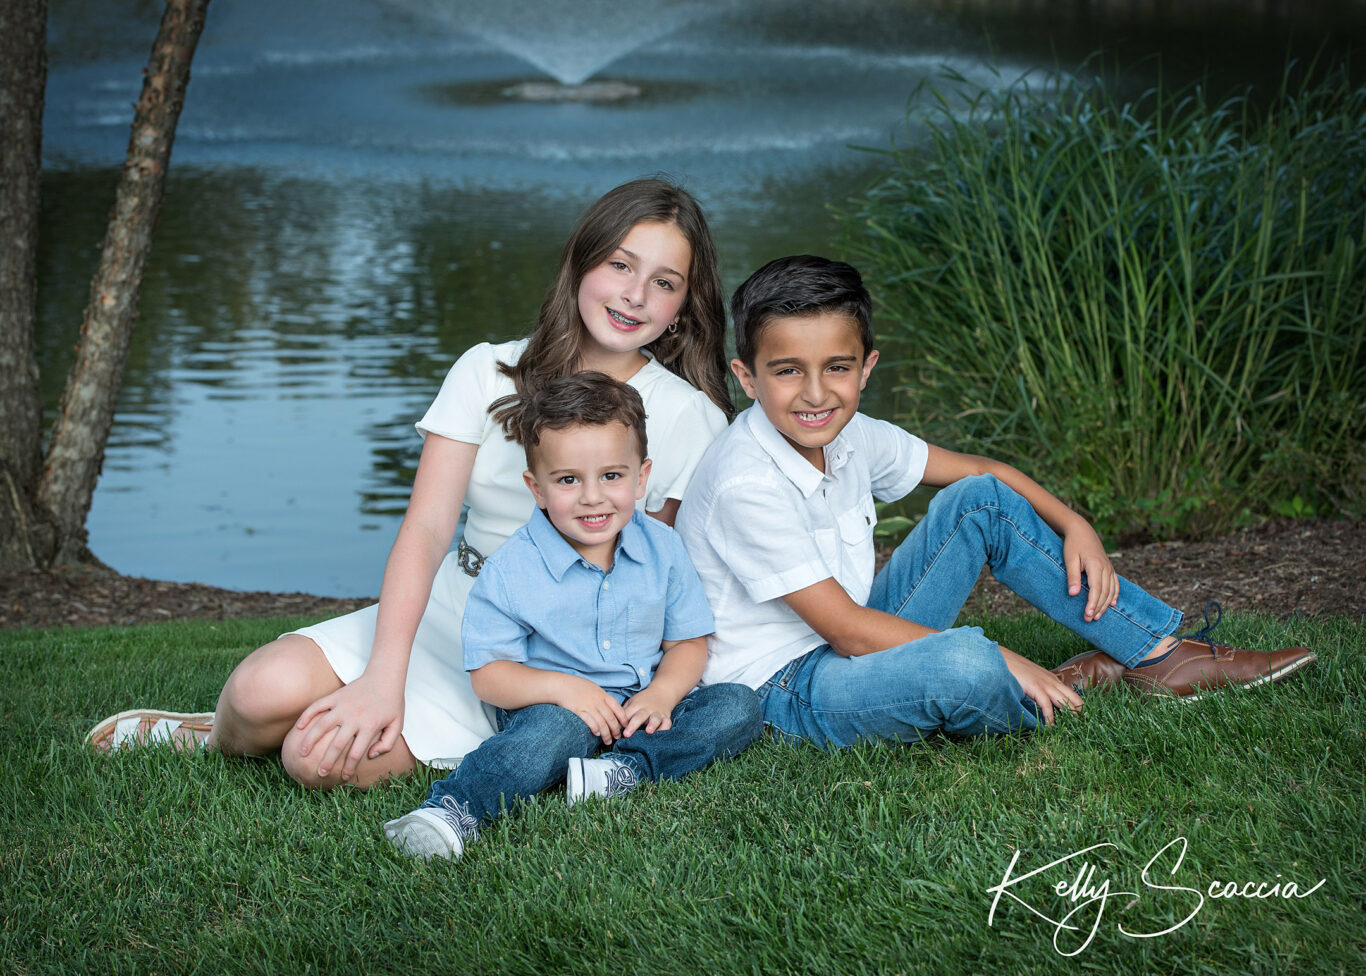 Big sister, little brothers outdoor portrait dressed in blues and whites smiling and looking at you